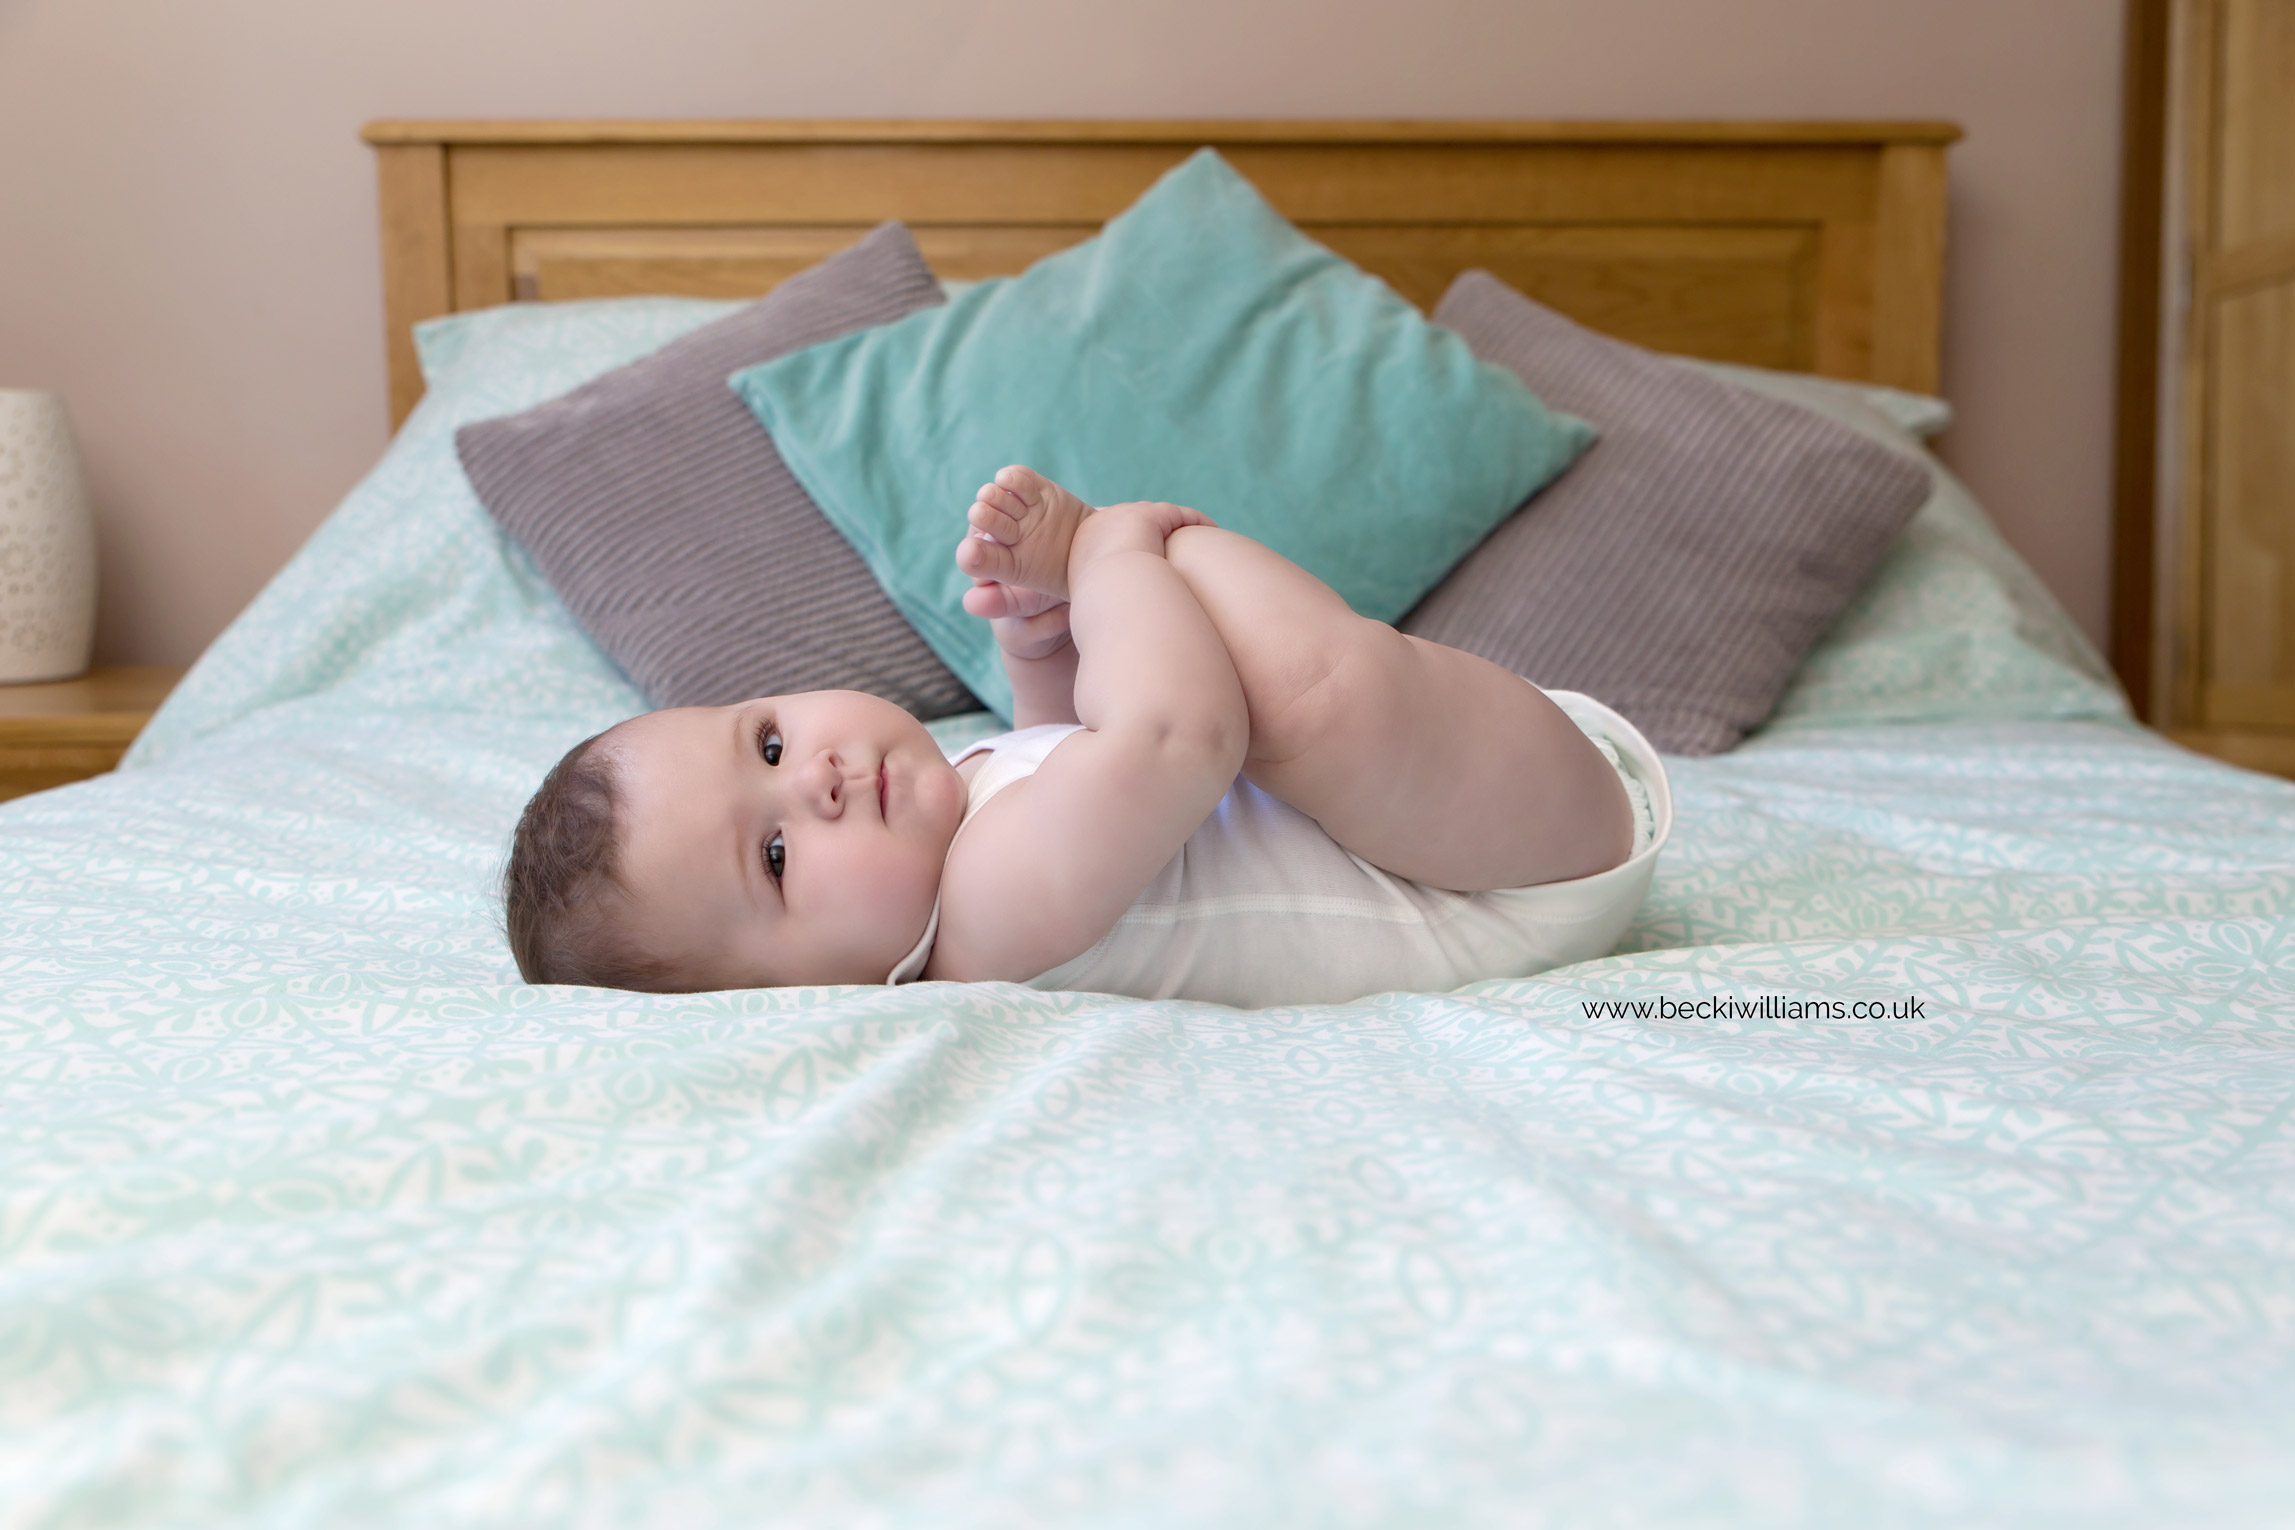 baby-photography-6-month-in-hertfordshire-girl-natural-at-home-bed.jpg